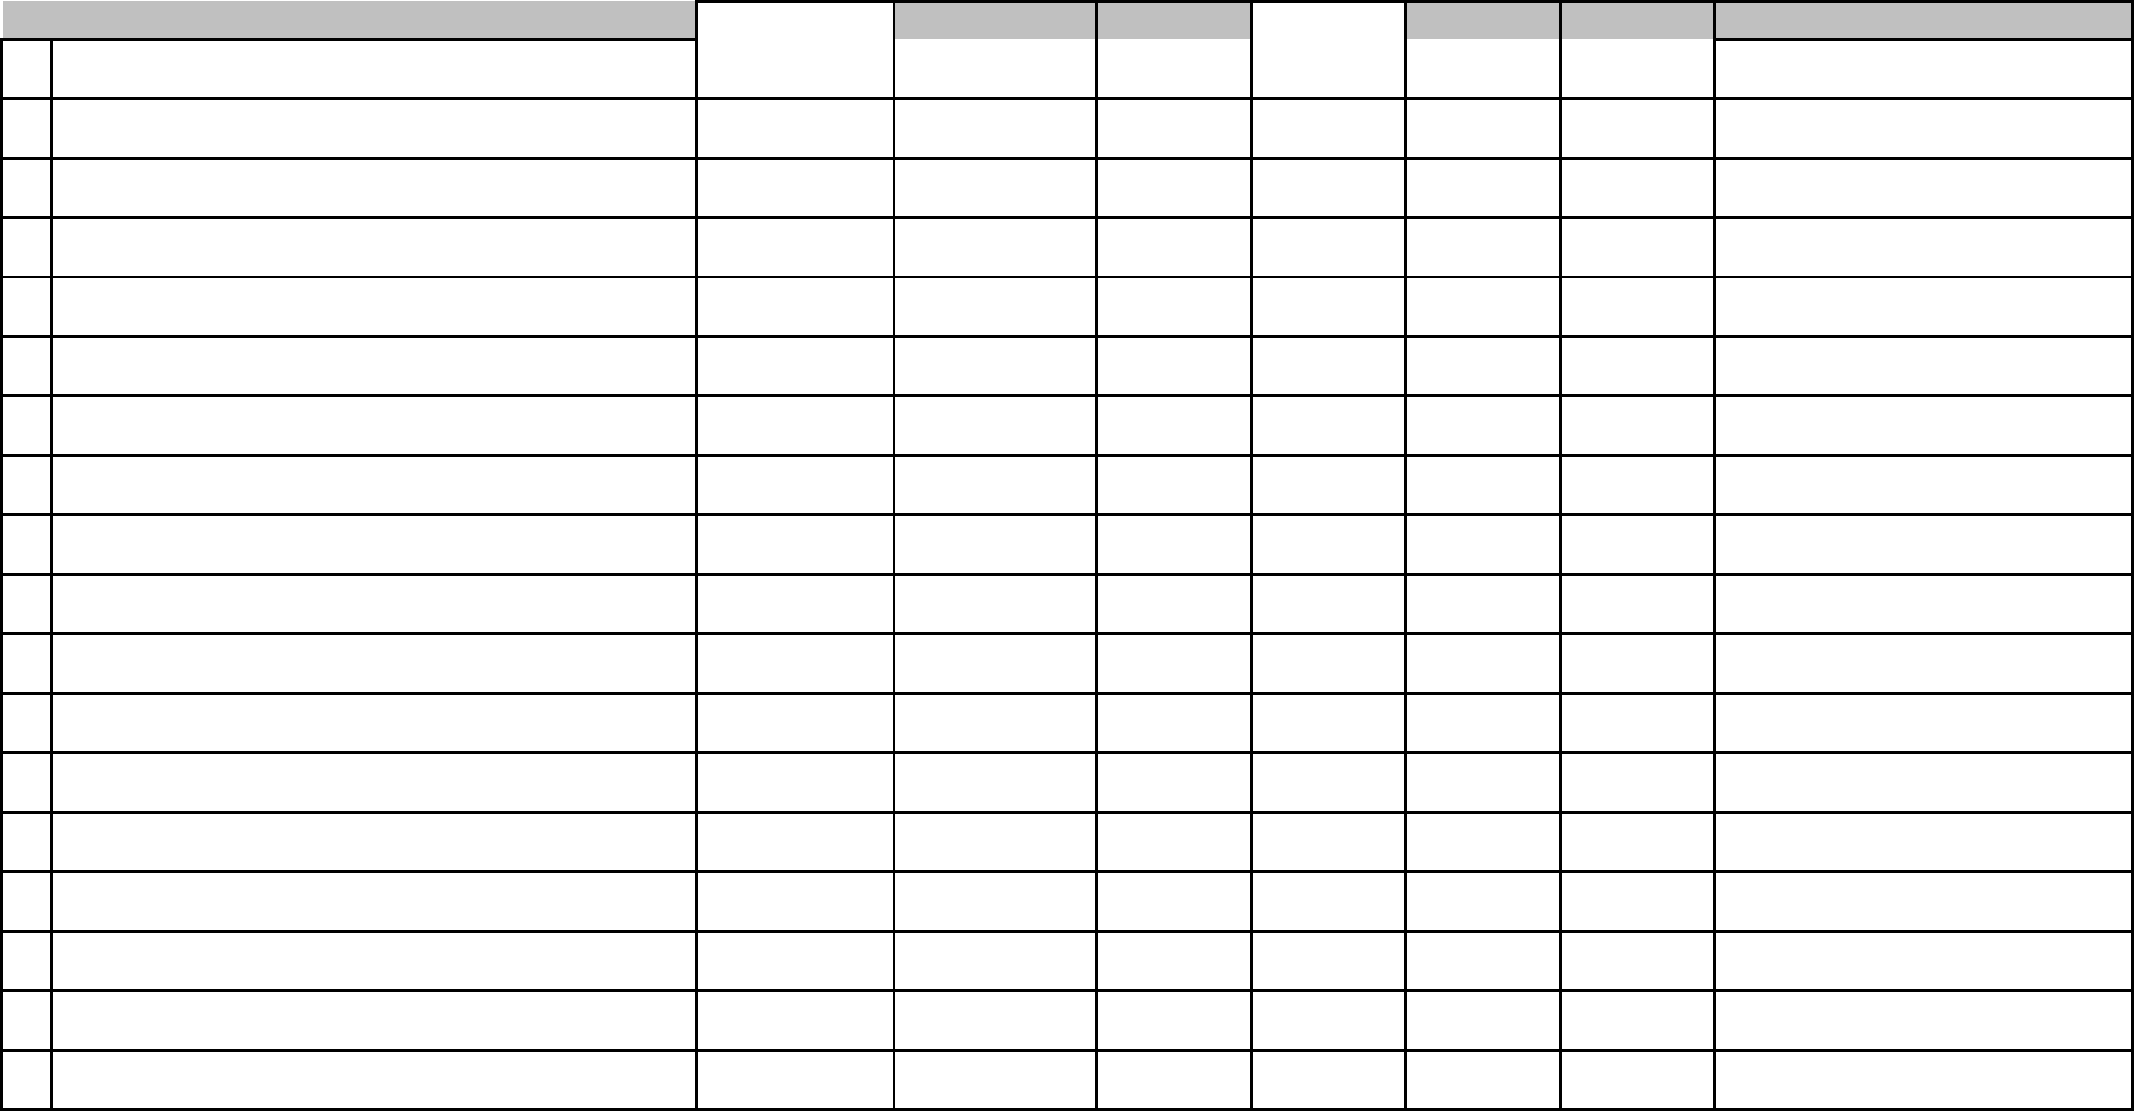 Tvp Talent Show Tally Sheet Free Download